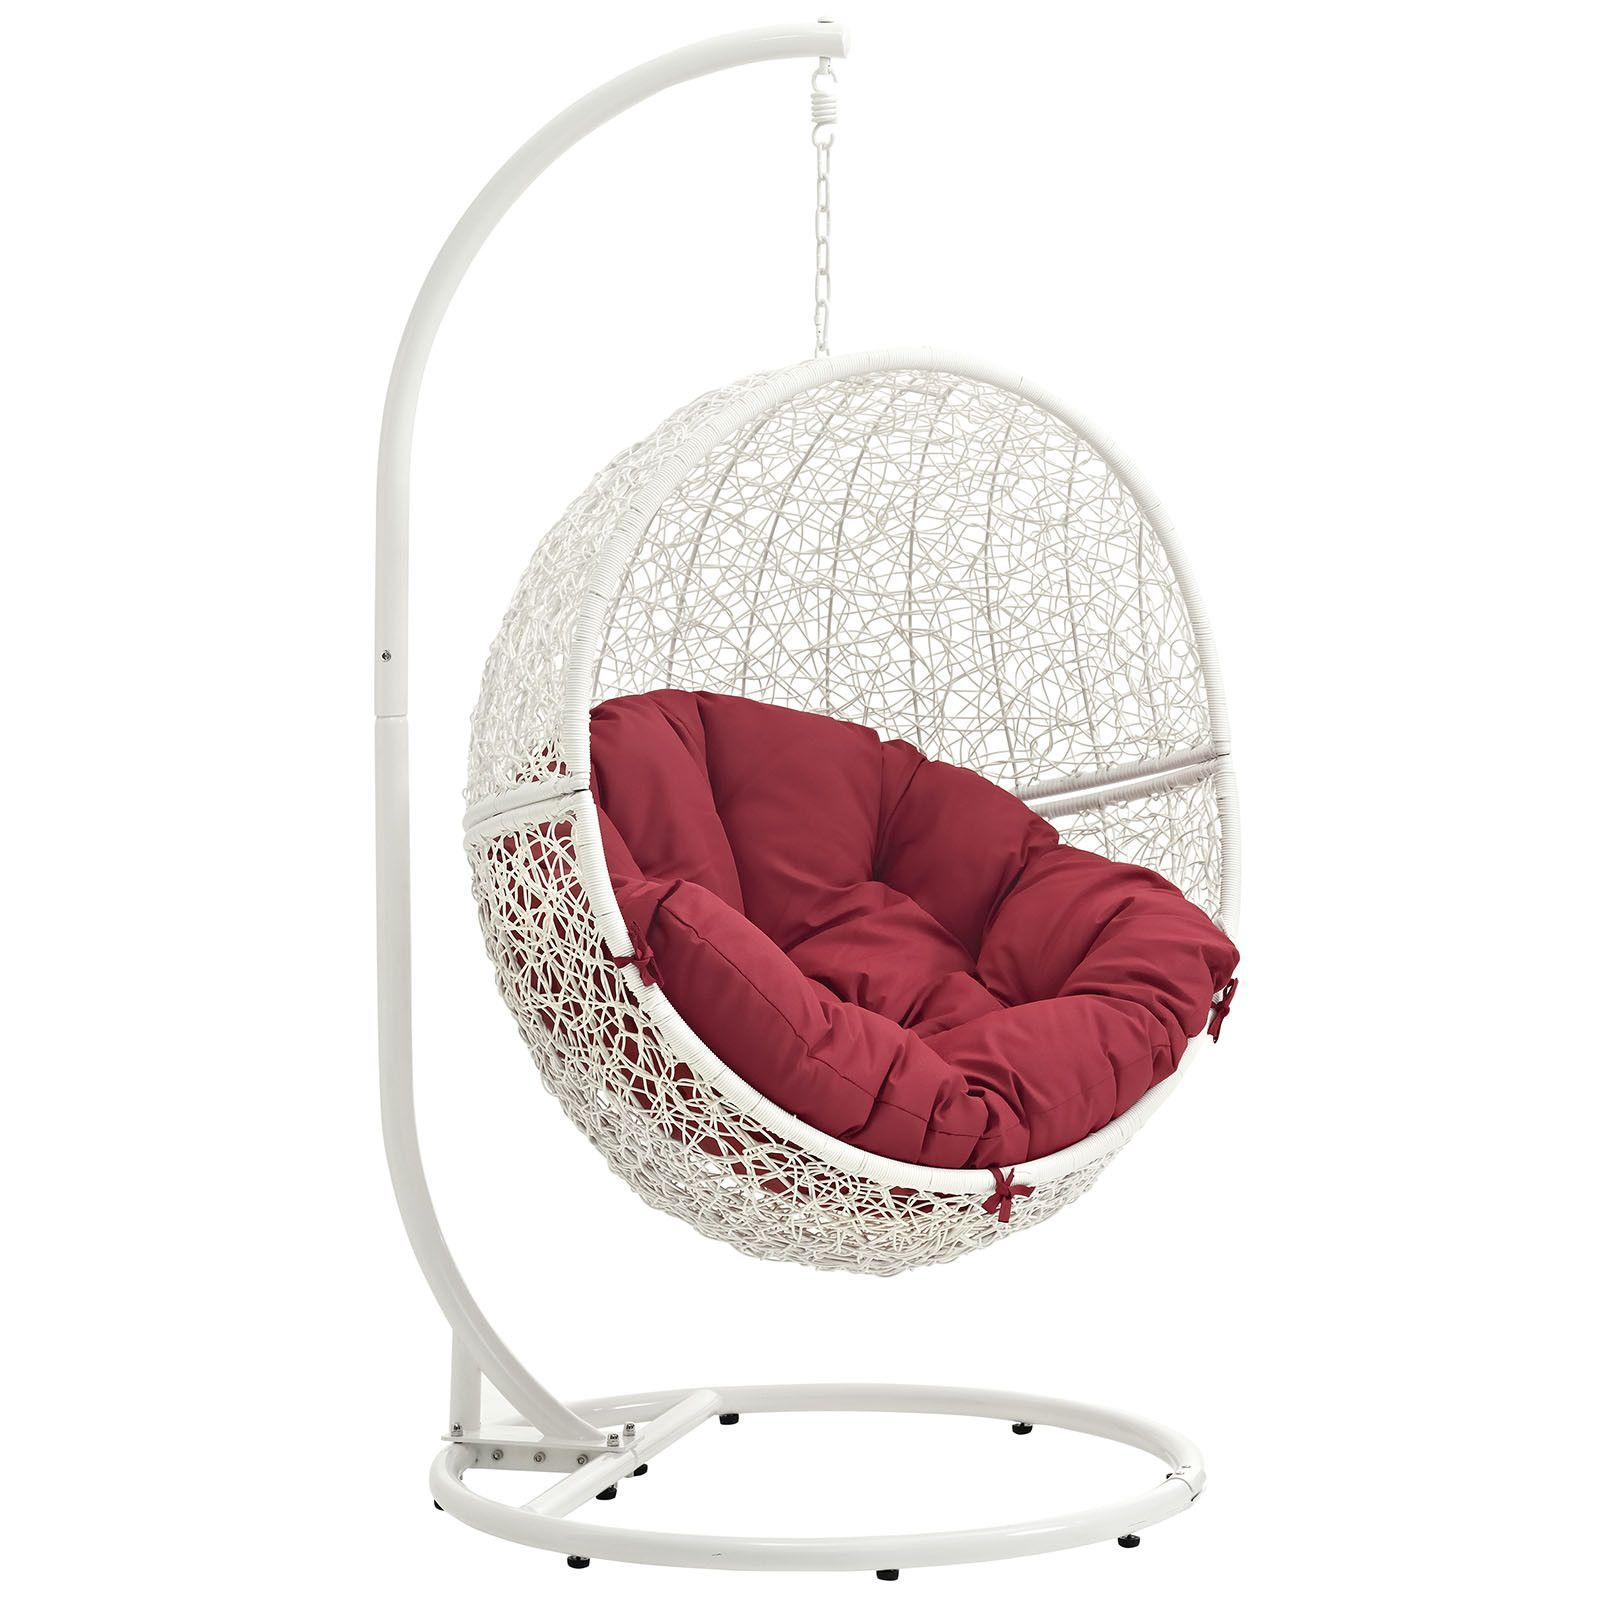 Hide Outdoor Patio Swing Chair With Stand White Red